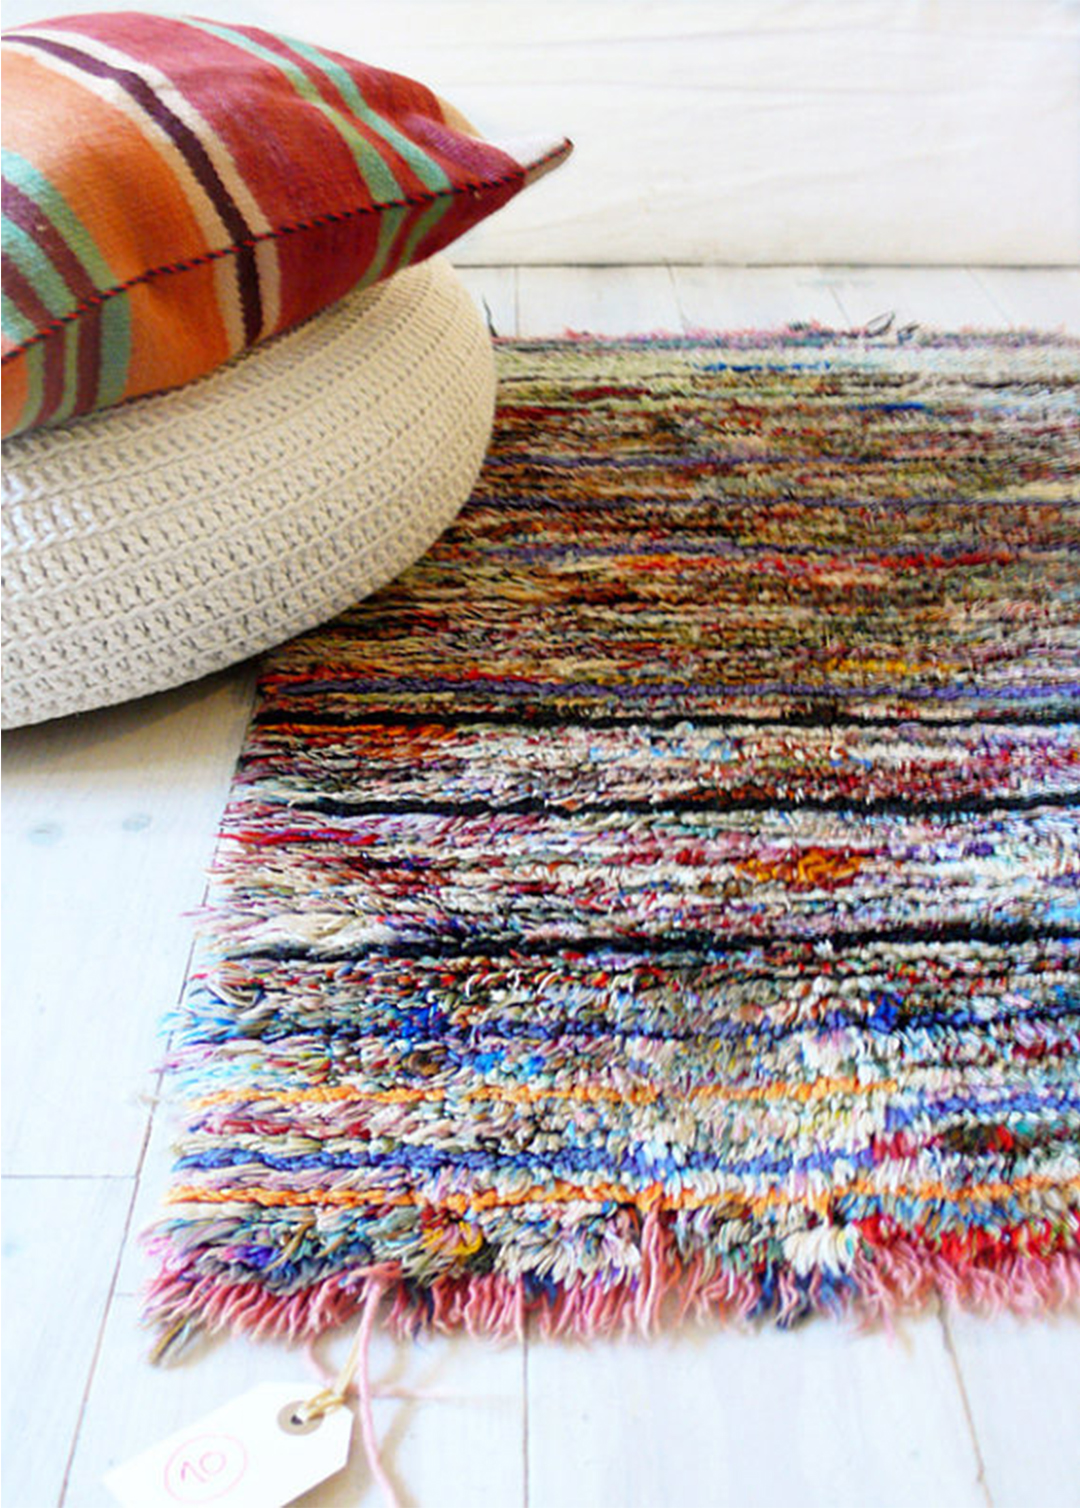 boucherouite rug - 5 Hot Rug Trends (and Rug Buying Tips!) – Pop & Circumstance